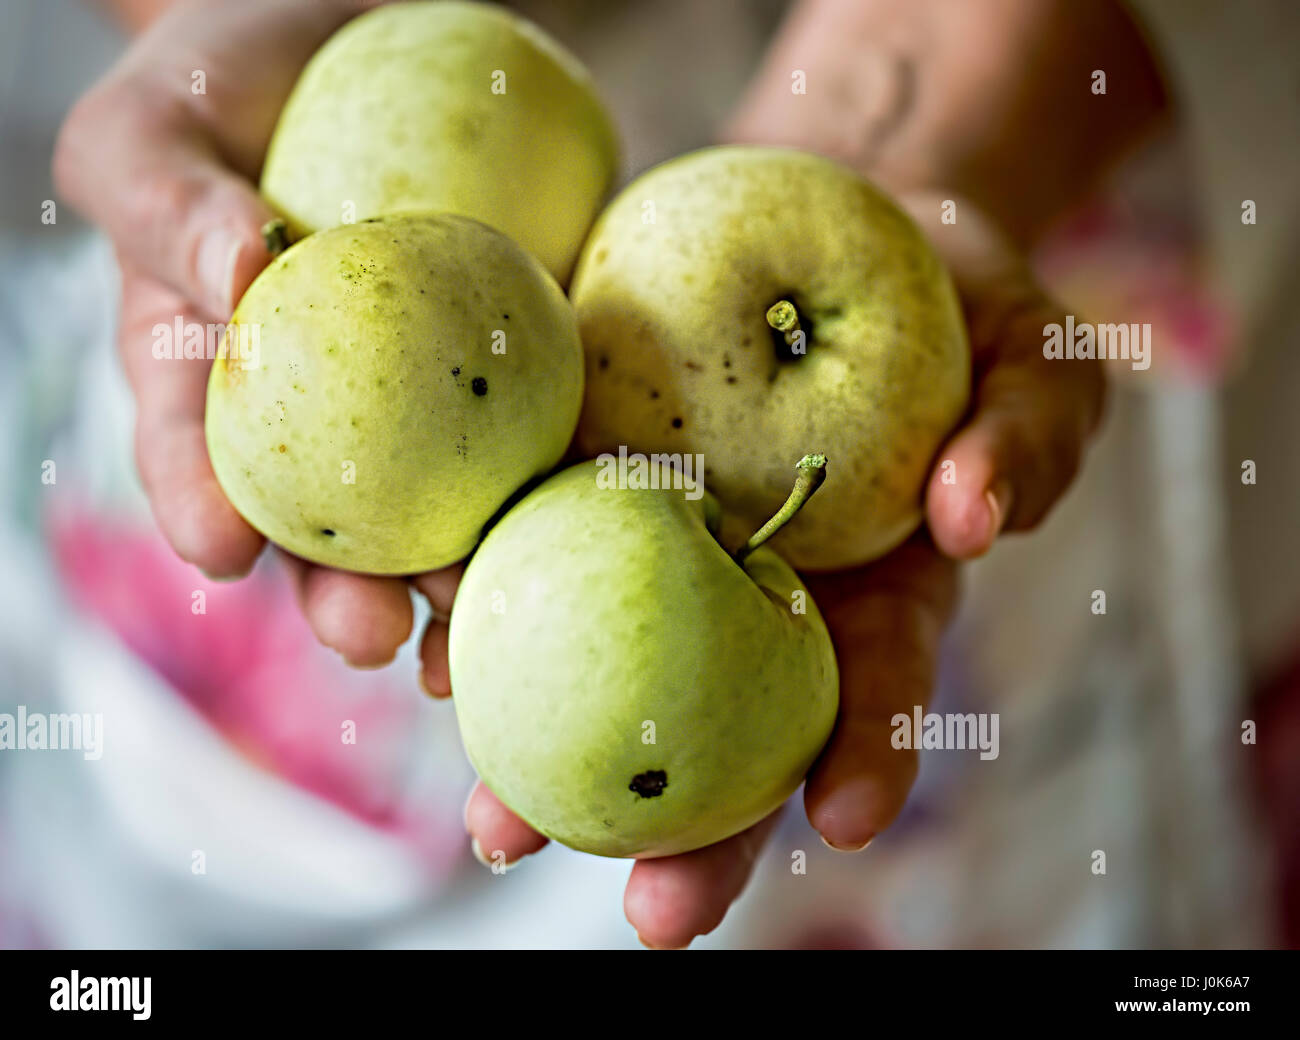 Woman holding green apples in her hands - Stock Image